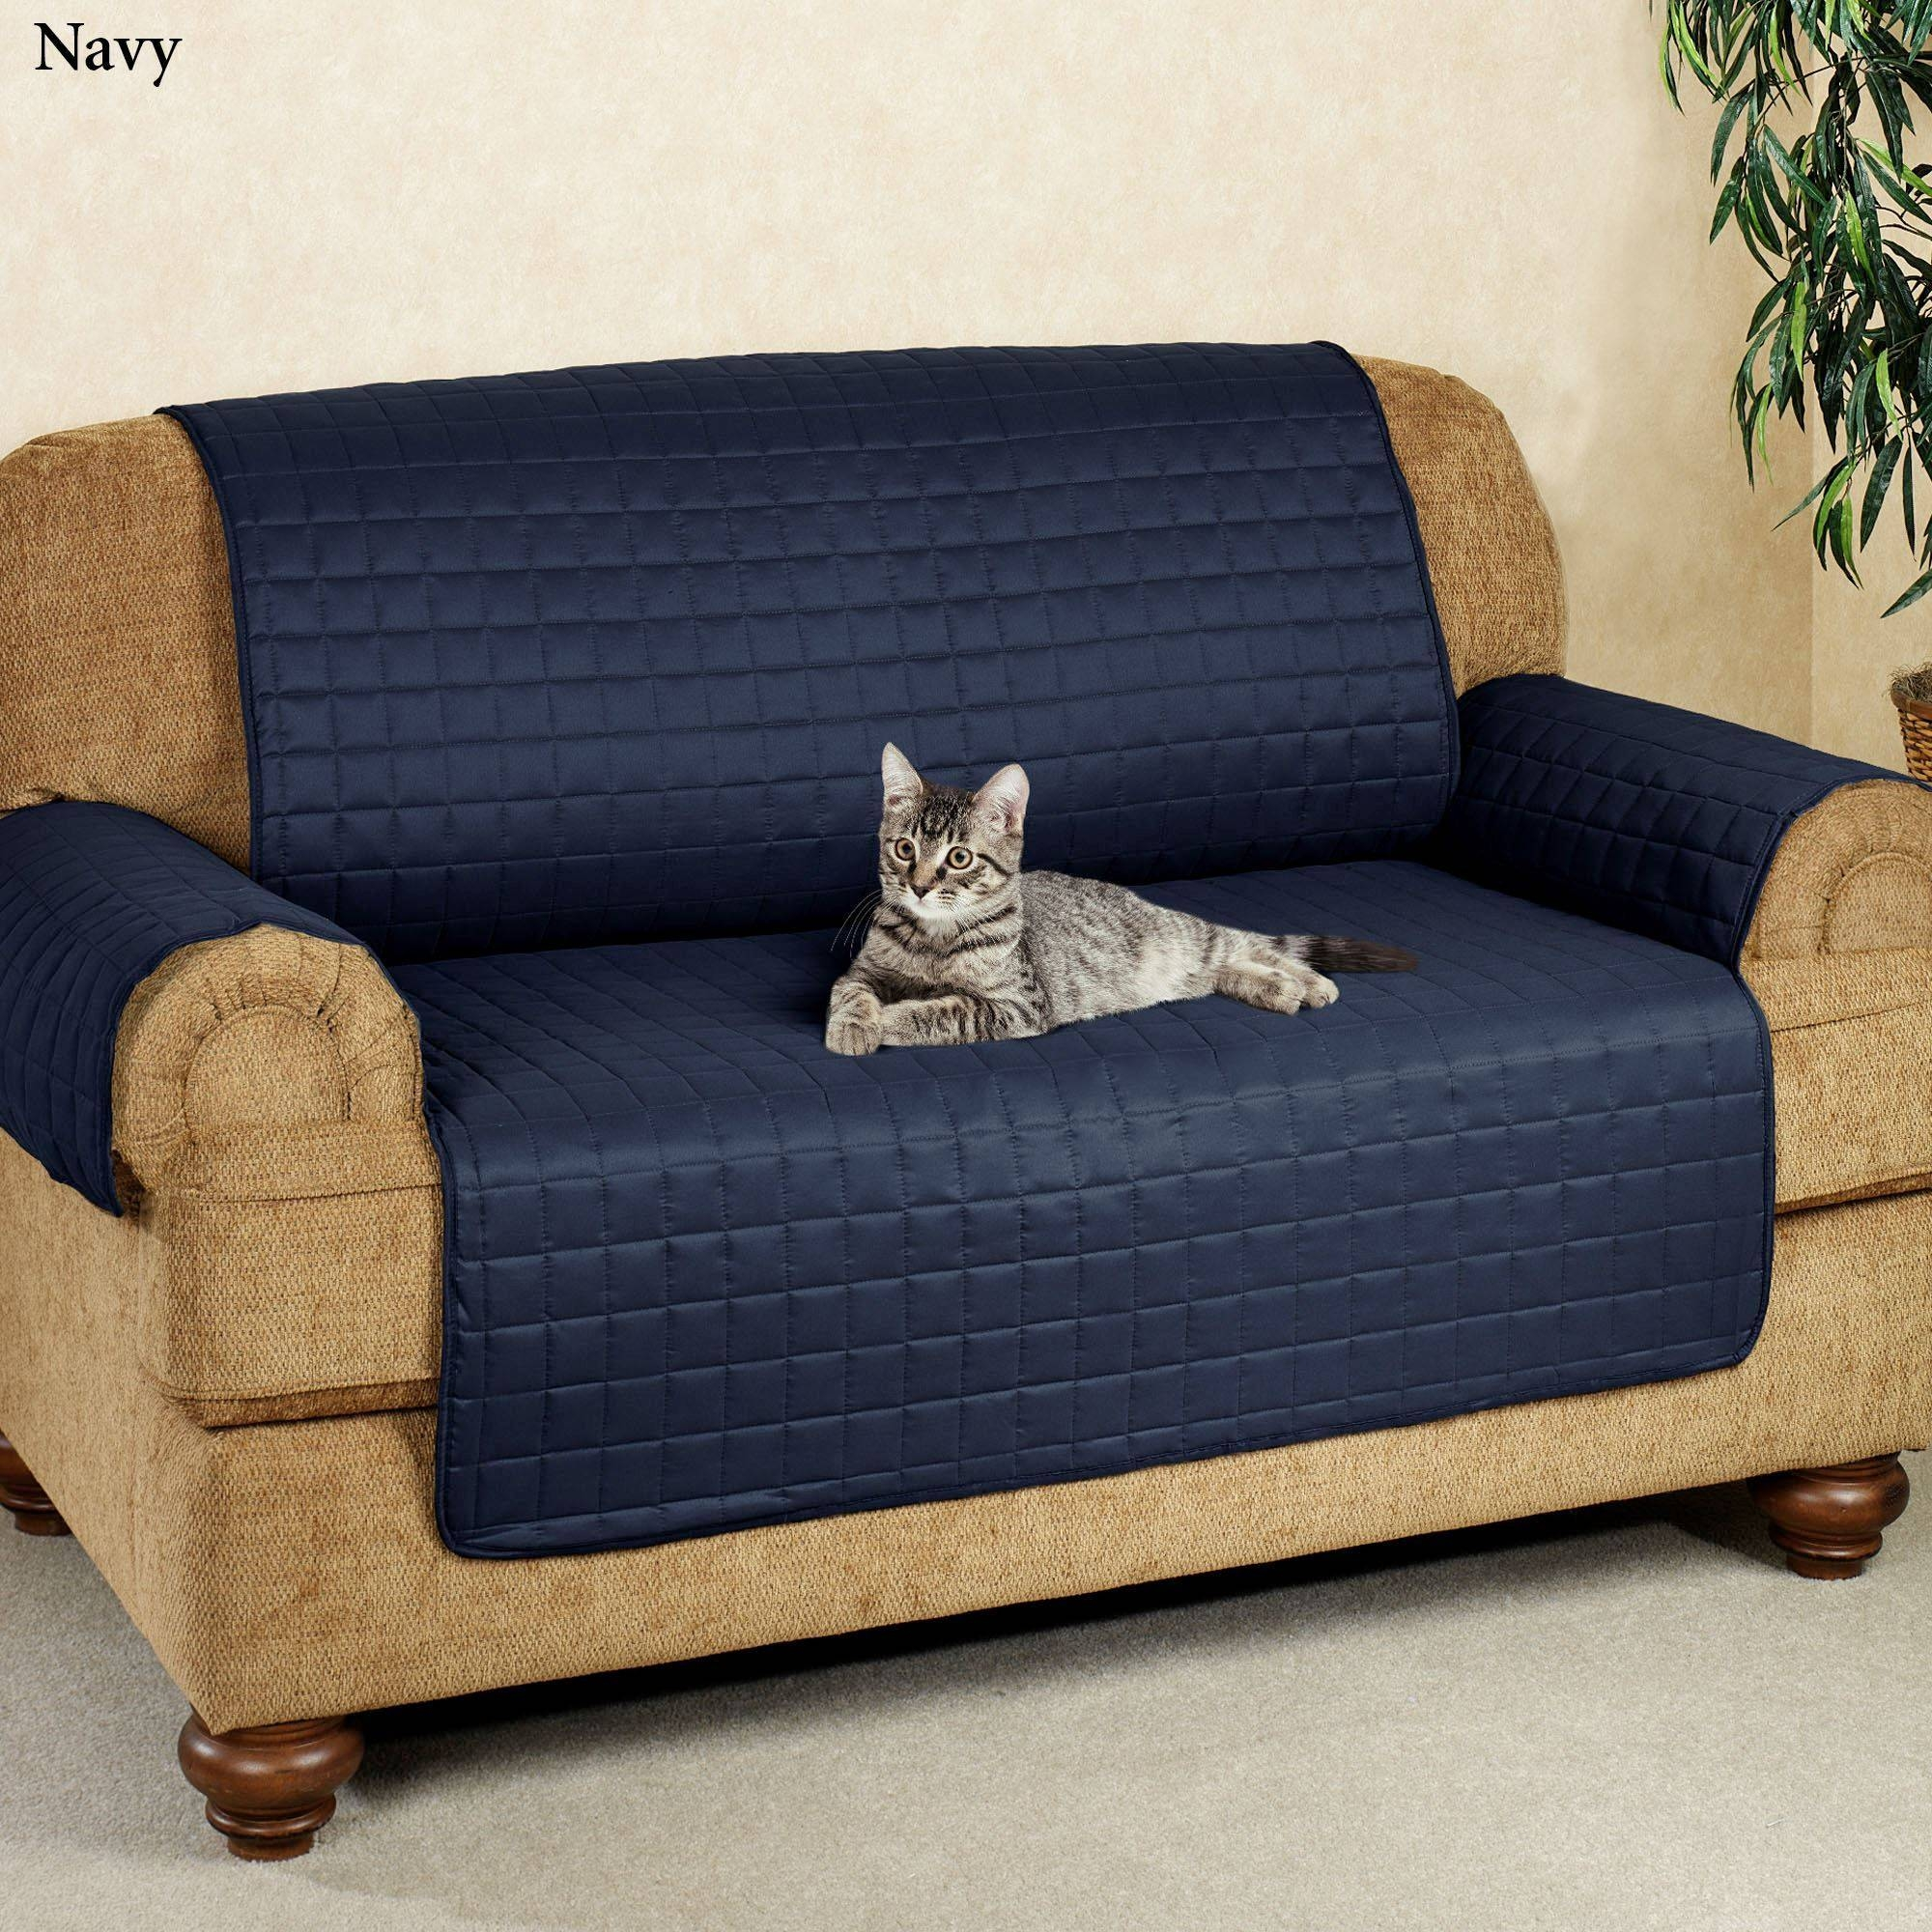 Microfiber Pet Furniture Covers With Tuck In Flaps for Blue Microfiber Sofas (Image 10 of 15)